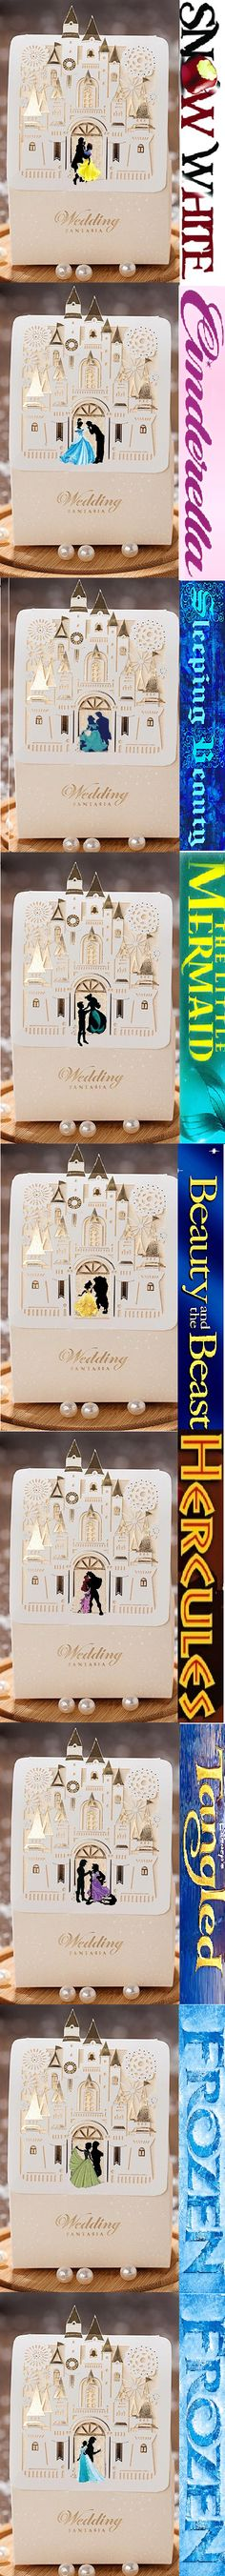 ALL Available individually on Ebay.   Search: Disney Wedding Gift Favor Boxes (Princess) for easier accessibility. More to come!! http://www.ebay.com/itm/Disney-wedding-candy-gift-favor-boxes-Sleeping-Beauty-Package-50pieces-per-set-/131685906507?hash=item1ea917784b:g:d6AAAOSwnGJWTU87 #DisneyWeddingIdeas